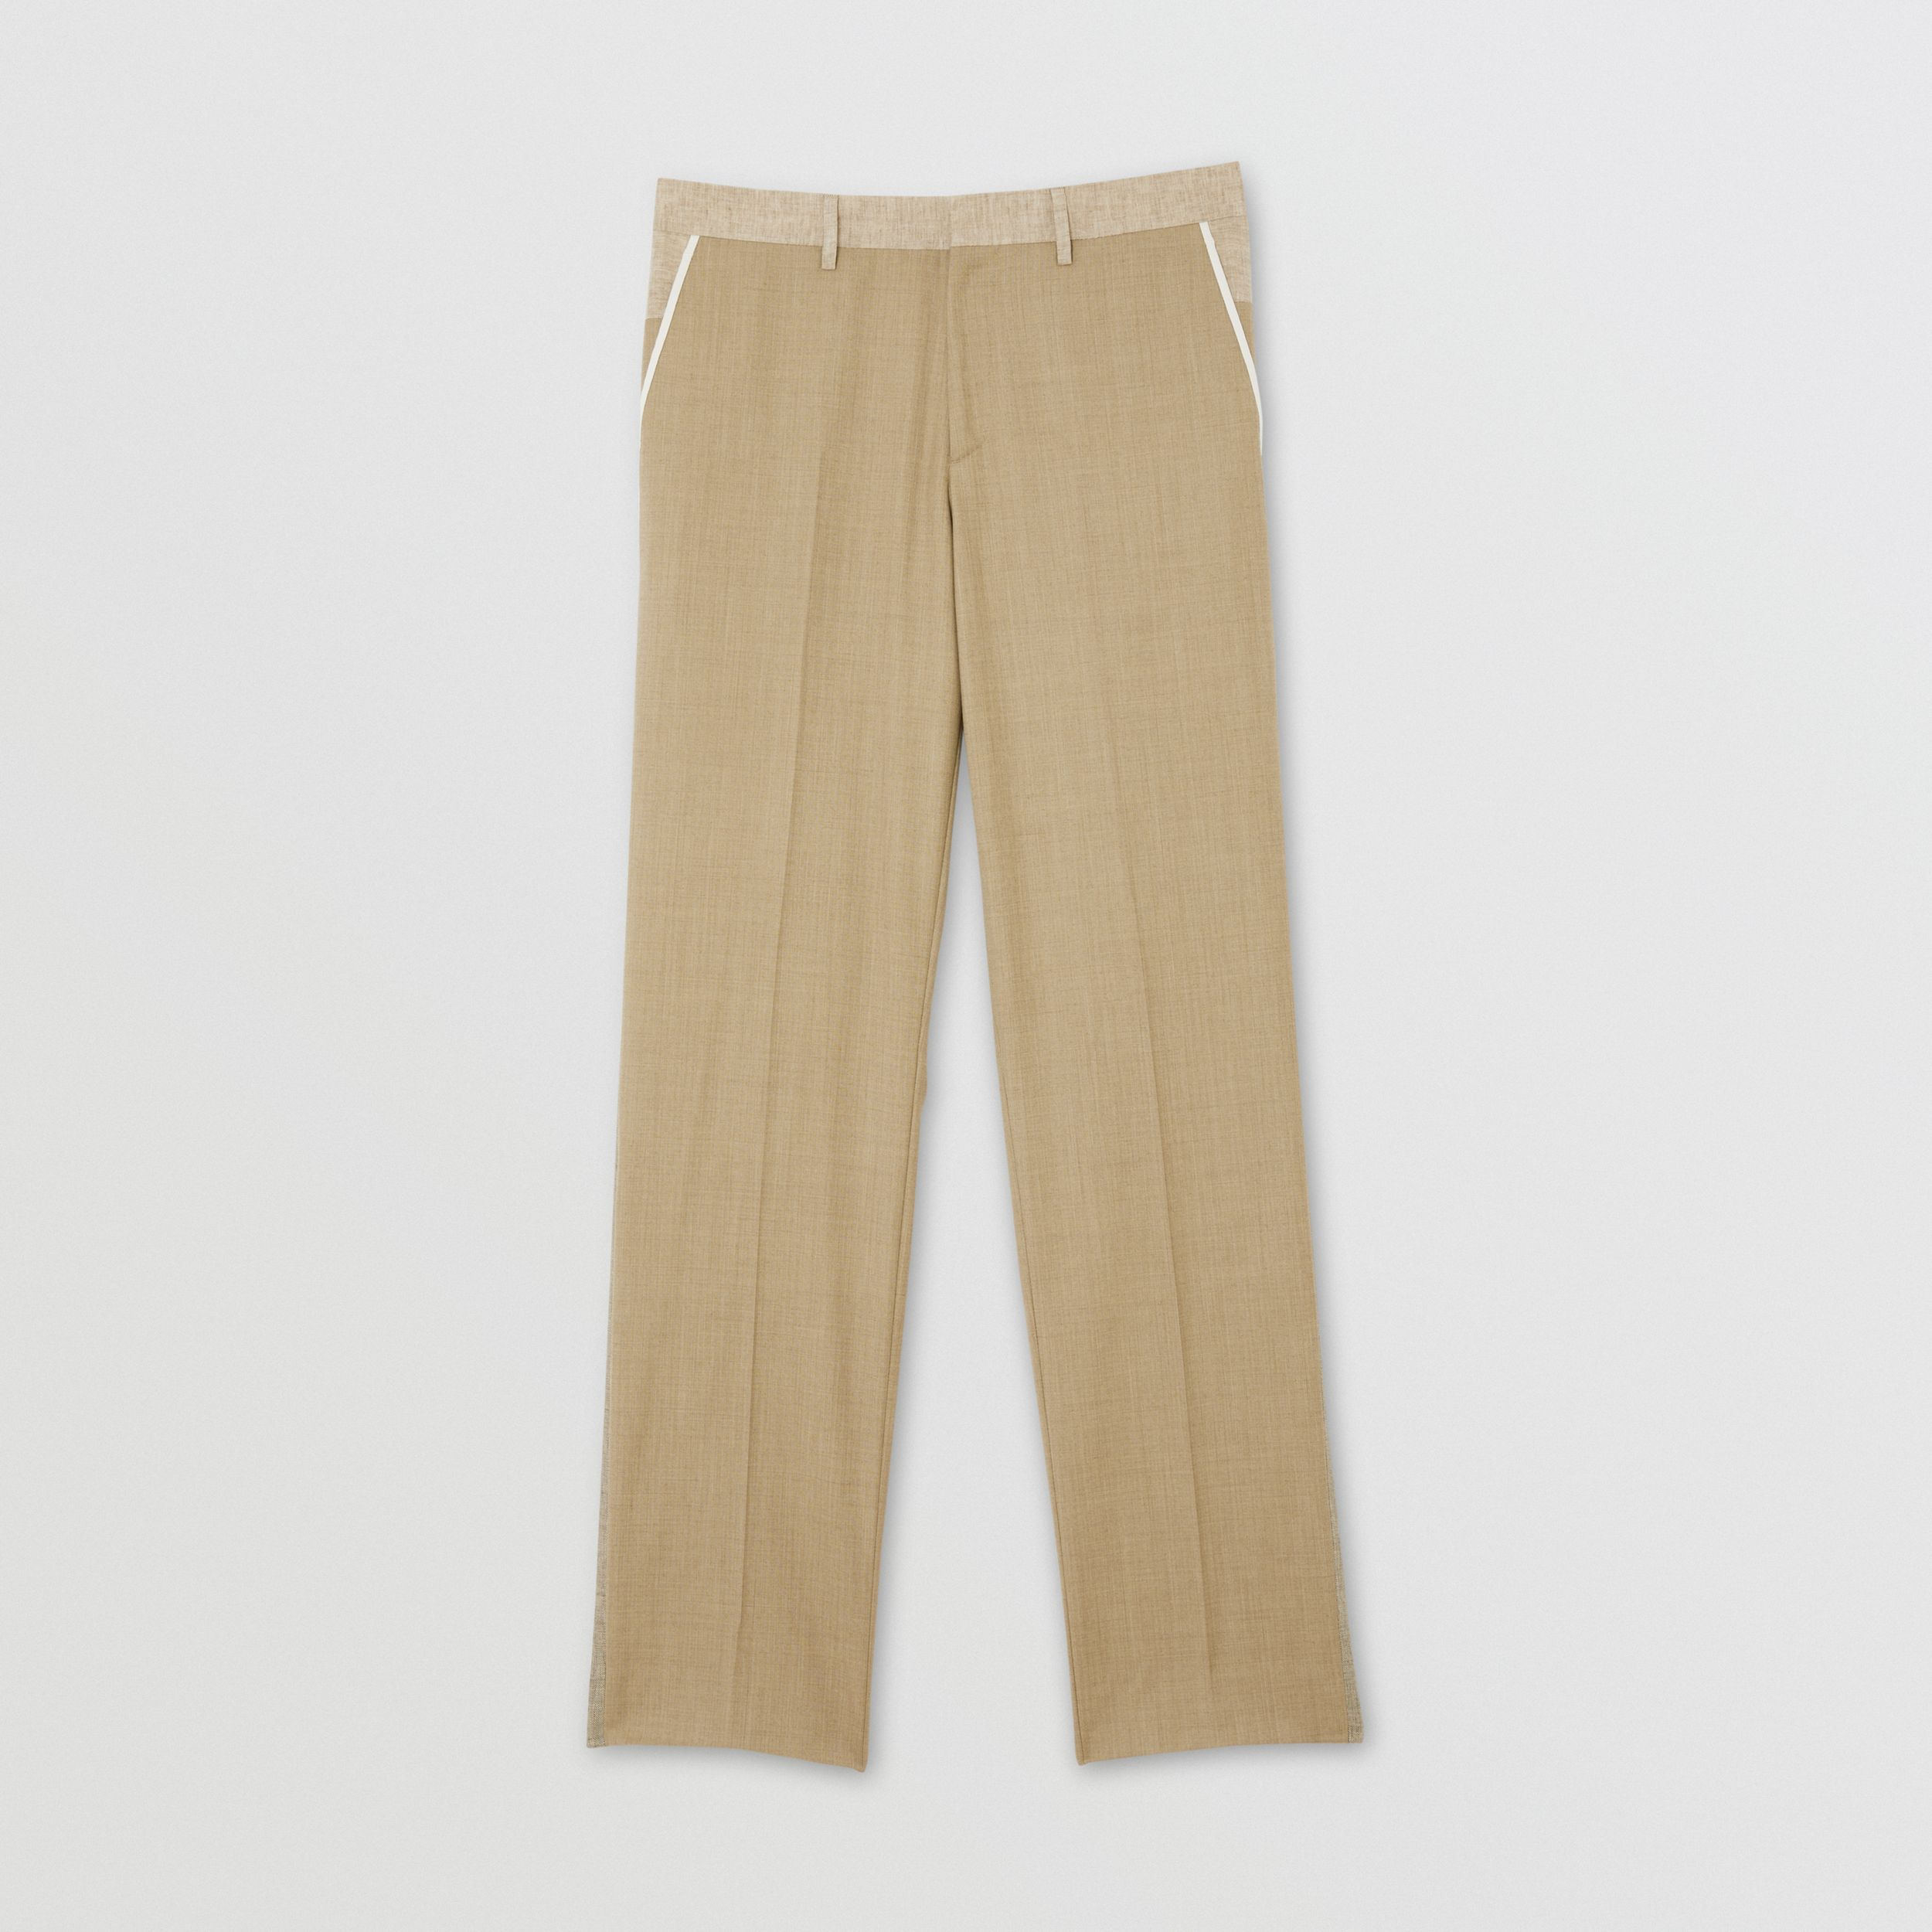 English Fit Wool Cashmere and Linen Tailored Trousers in Pecan Melange - Men | Burberry - 4